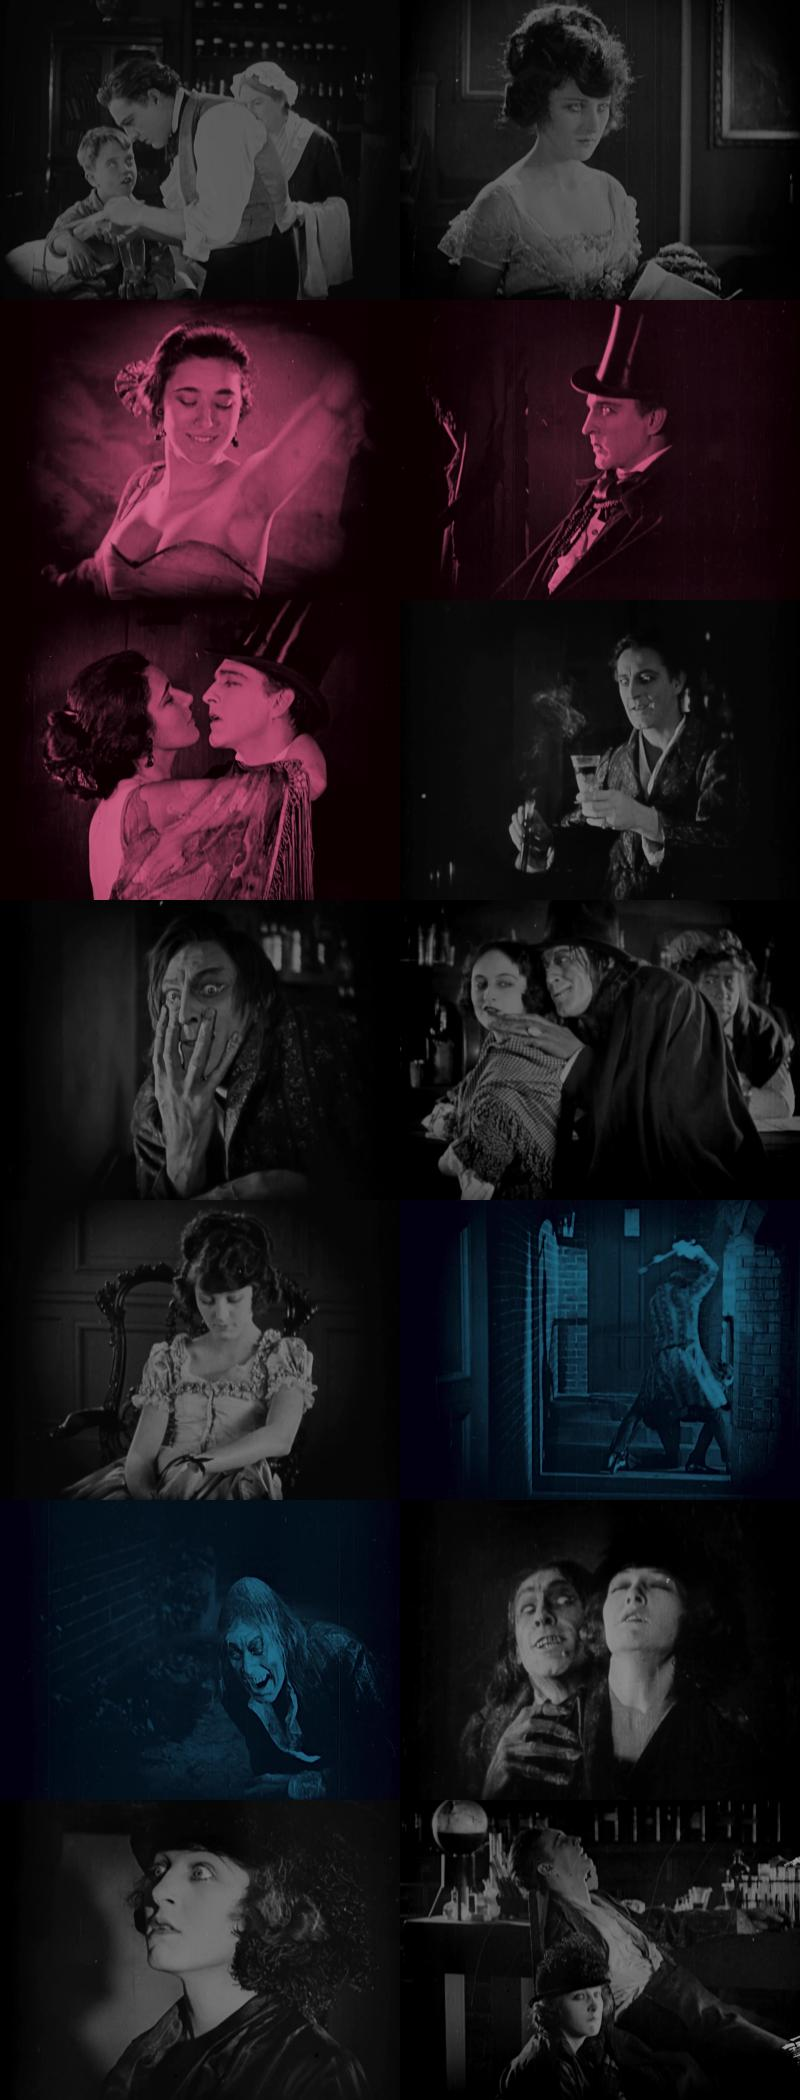 http://watershade.net/public/dr-jekyll-and-mr-hyde-1920.jpg